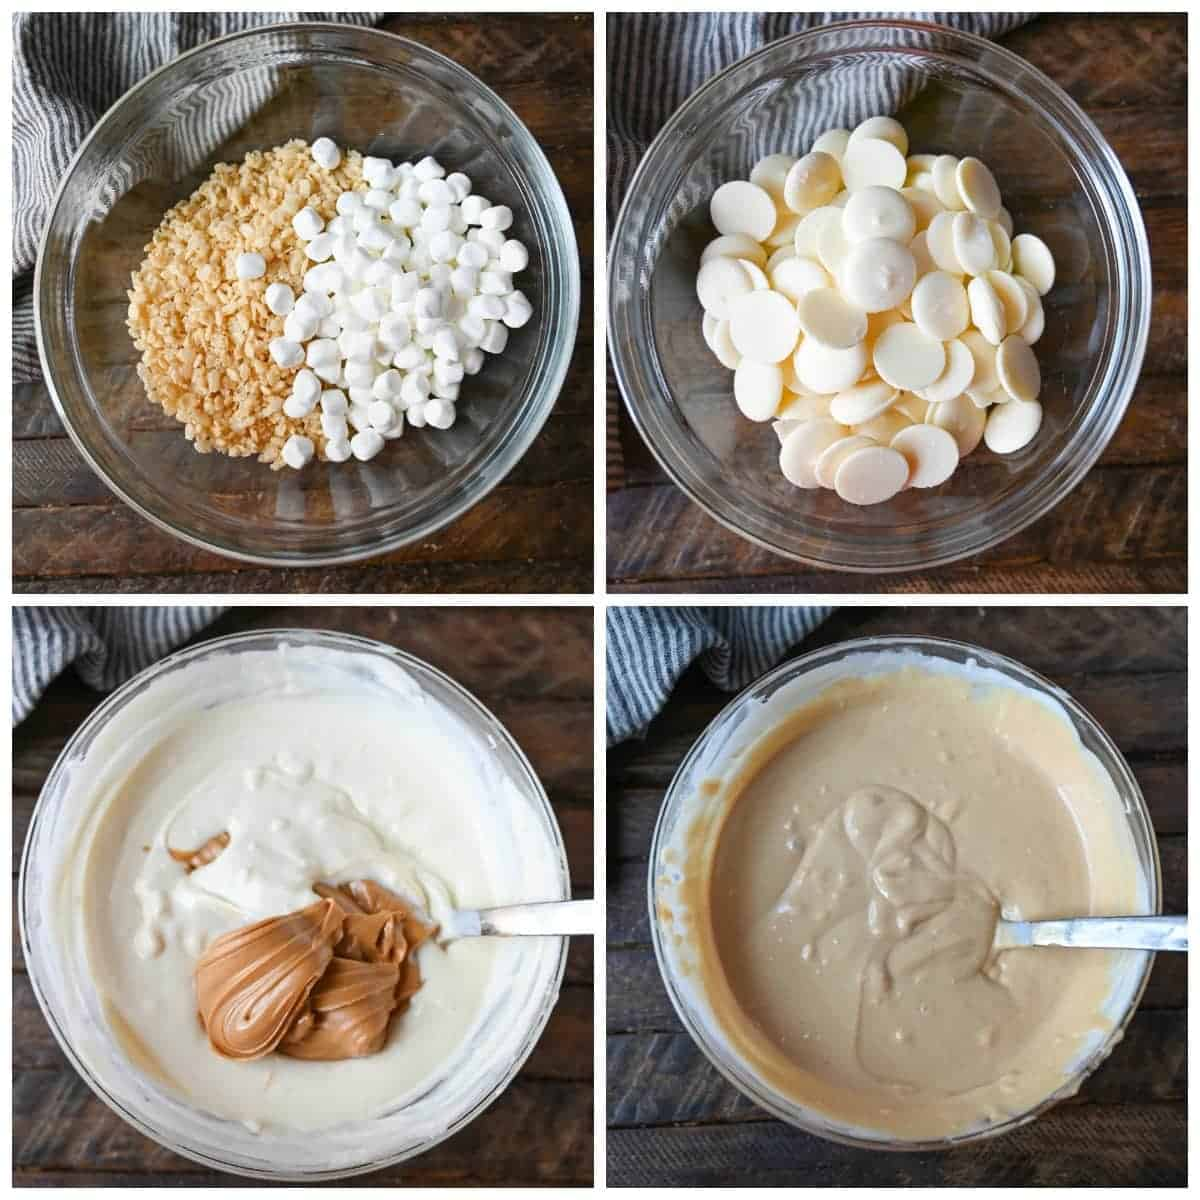 four process photos. First one, rice krispies and marshmallows in a bowl. Second one, white chocolate in a bowl. Third one, white chocolate that was melted and peanut butter being mixed in. Fourth one, White chocolate and peanut butter all mixed together and melted.